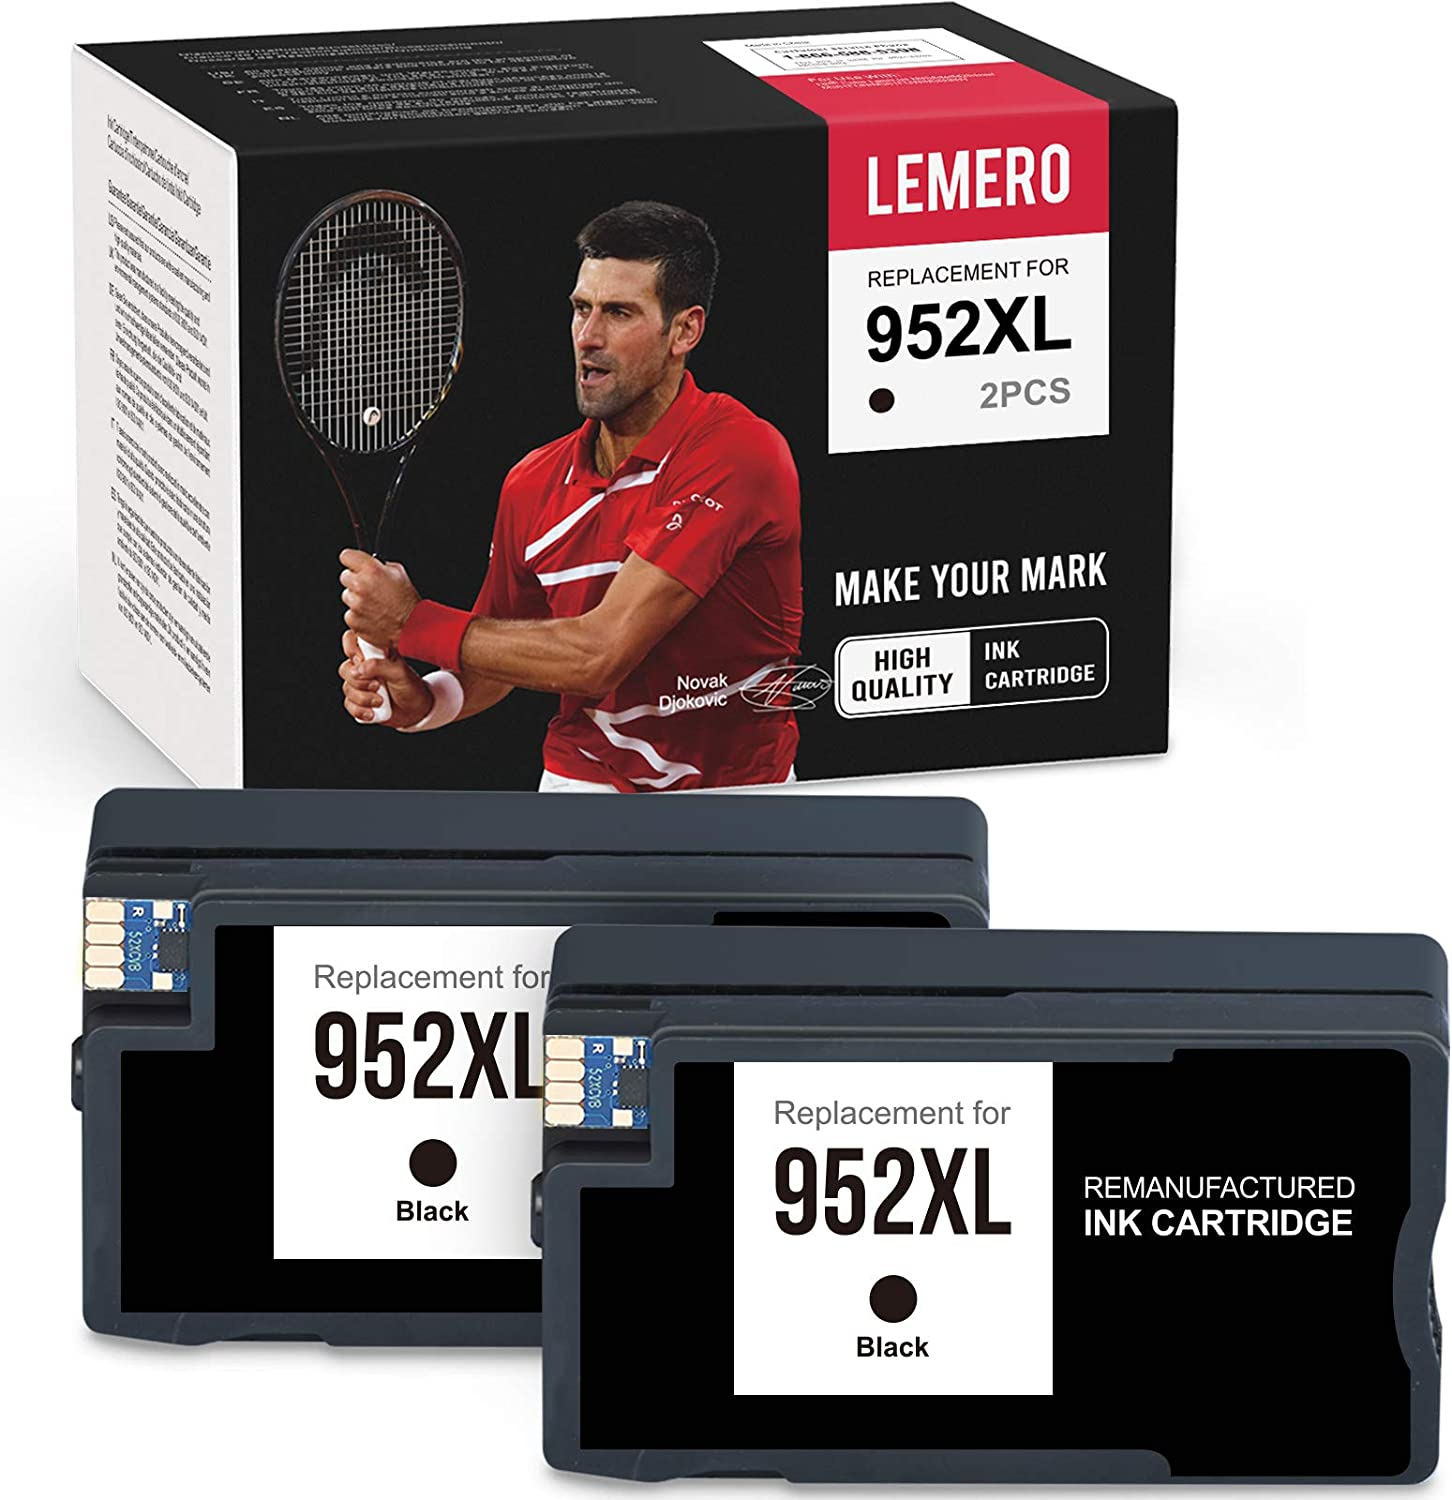 LEMERO Remanufactured Ink Cartridges Replacement for HP 952 952 XL 952XL to use with OfficeJet Pro 8710 8720 8702 7740 8200 8210 8715 8216 8700 8740 8730 7740 (2 Black)